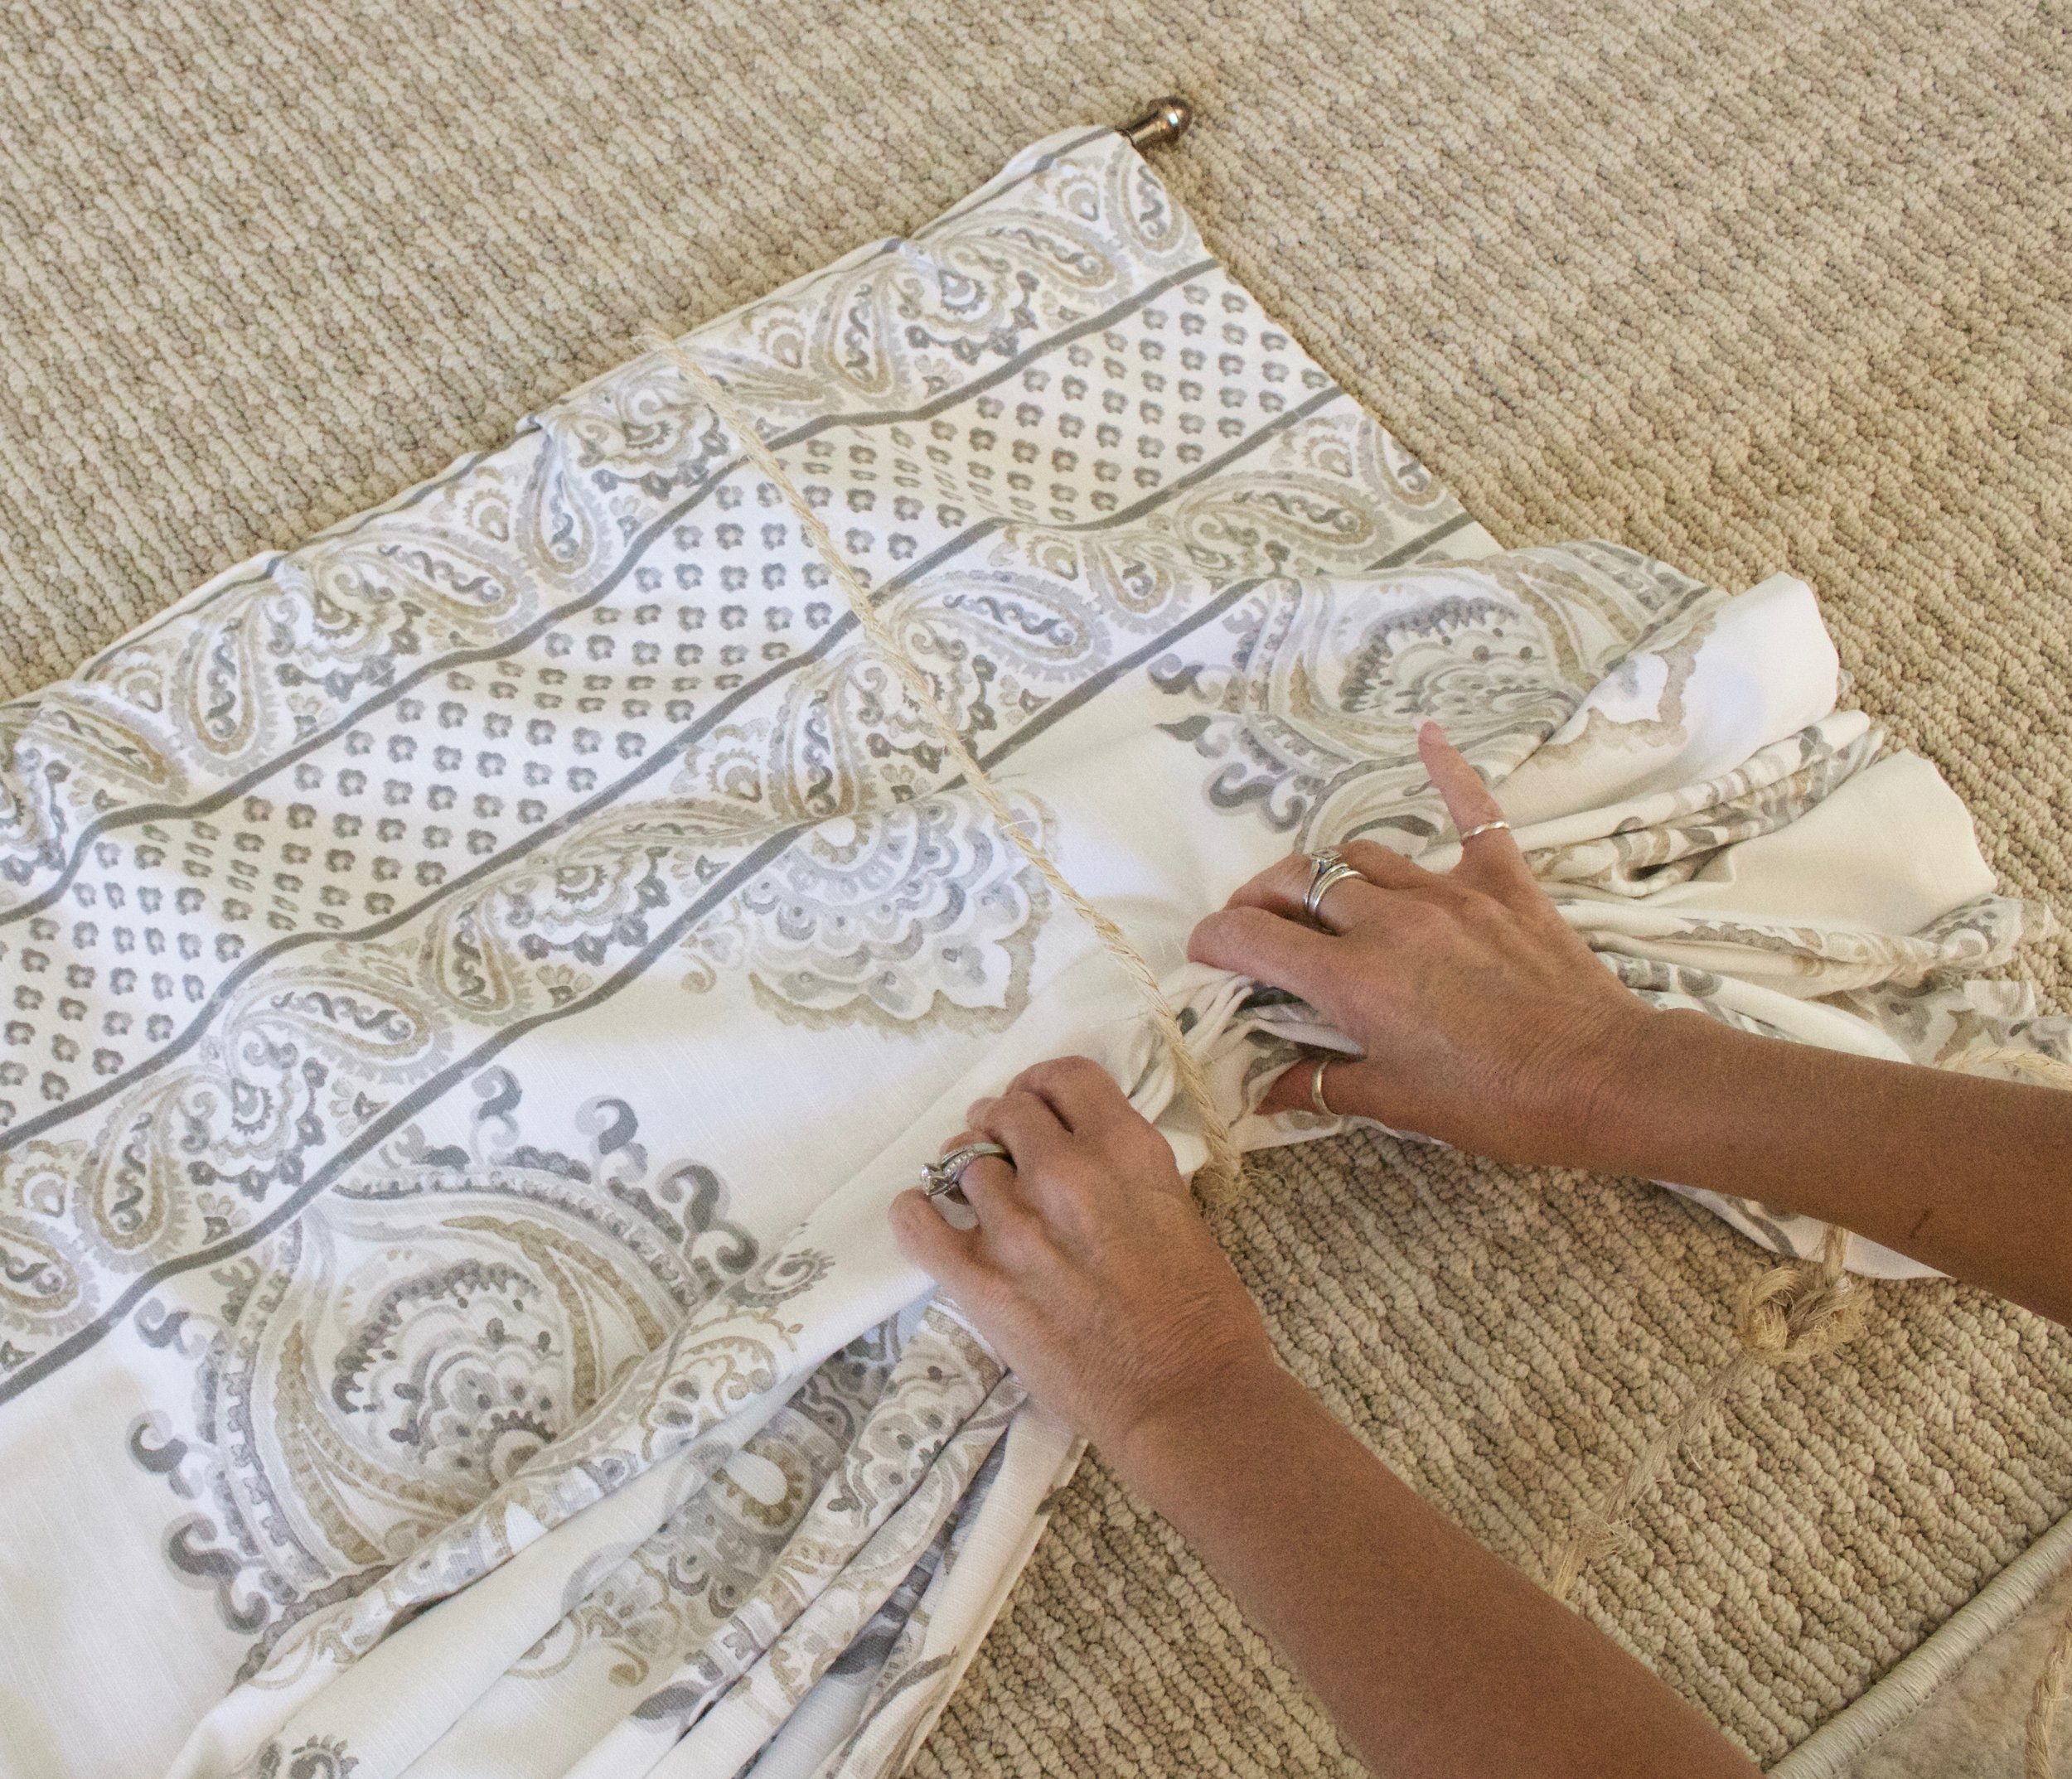 How To Make No Sew Curtain Valances Styled With Lace